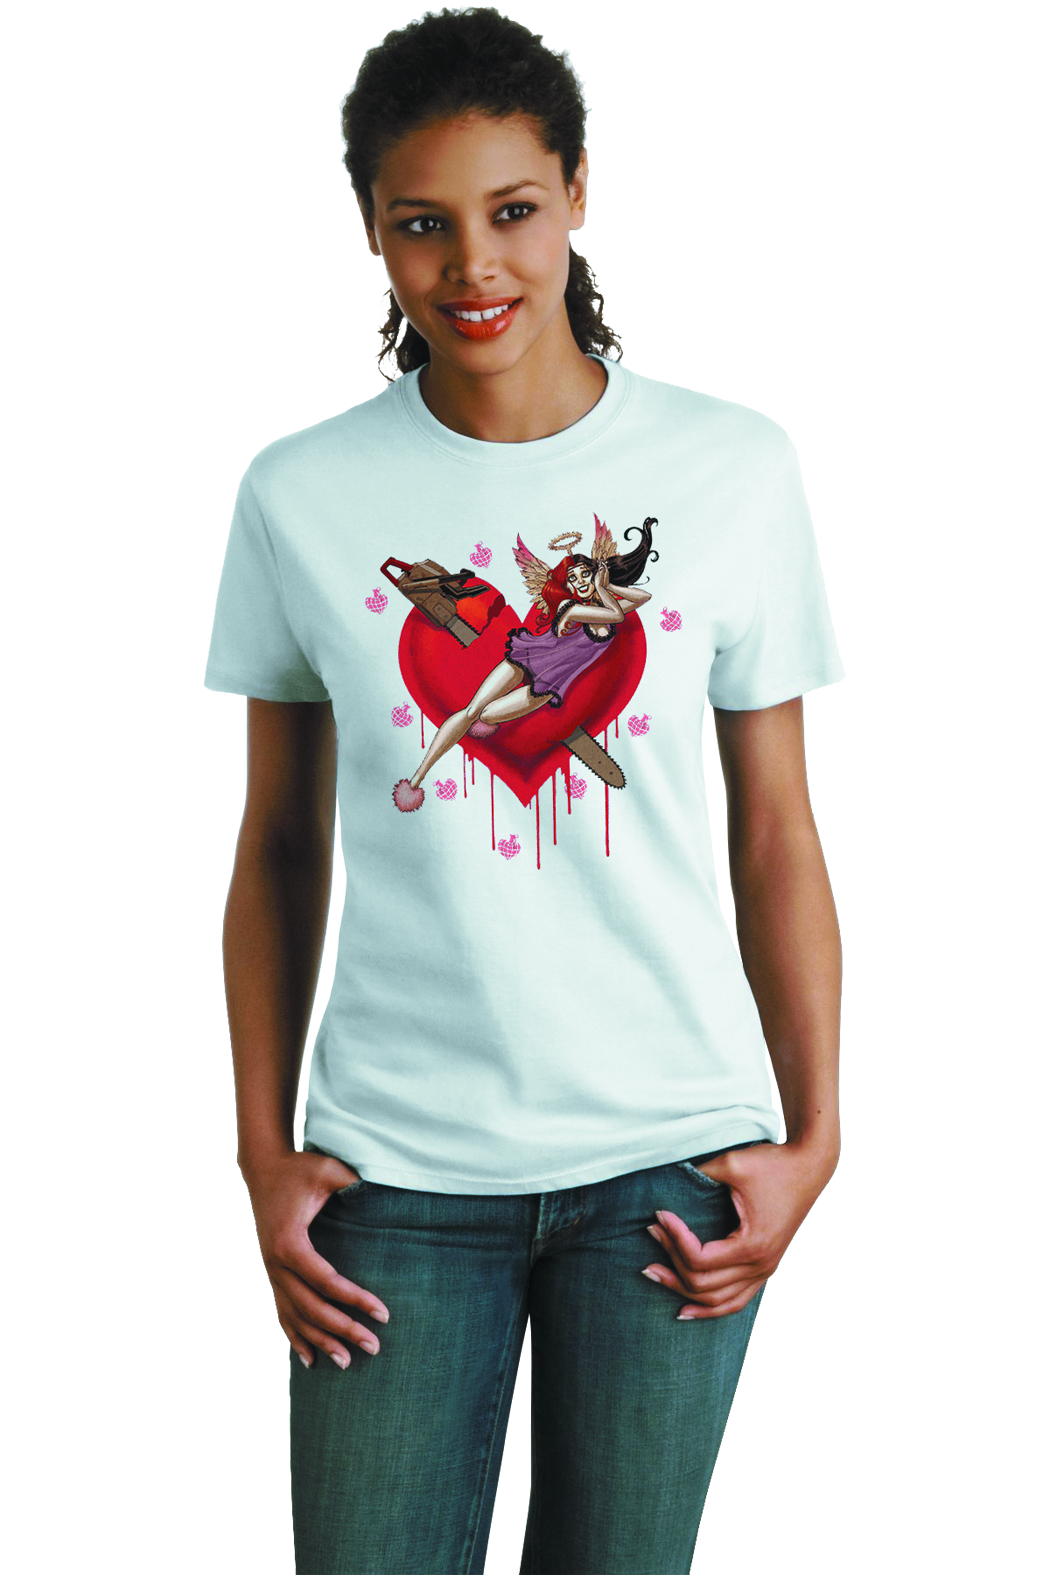 HARLEY QUINN HEARTBREAK YOUTH T/S MED